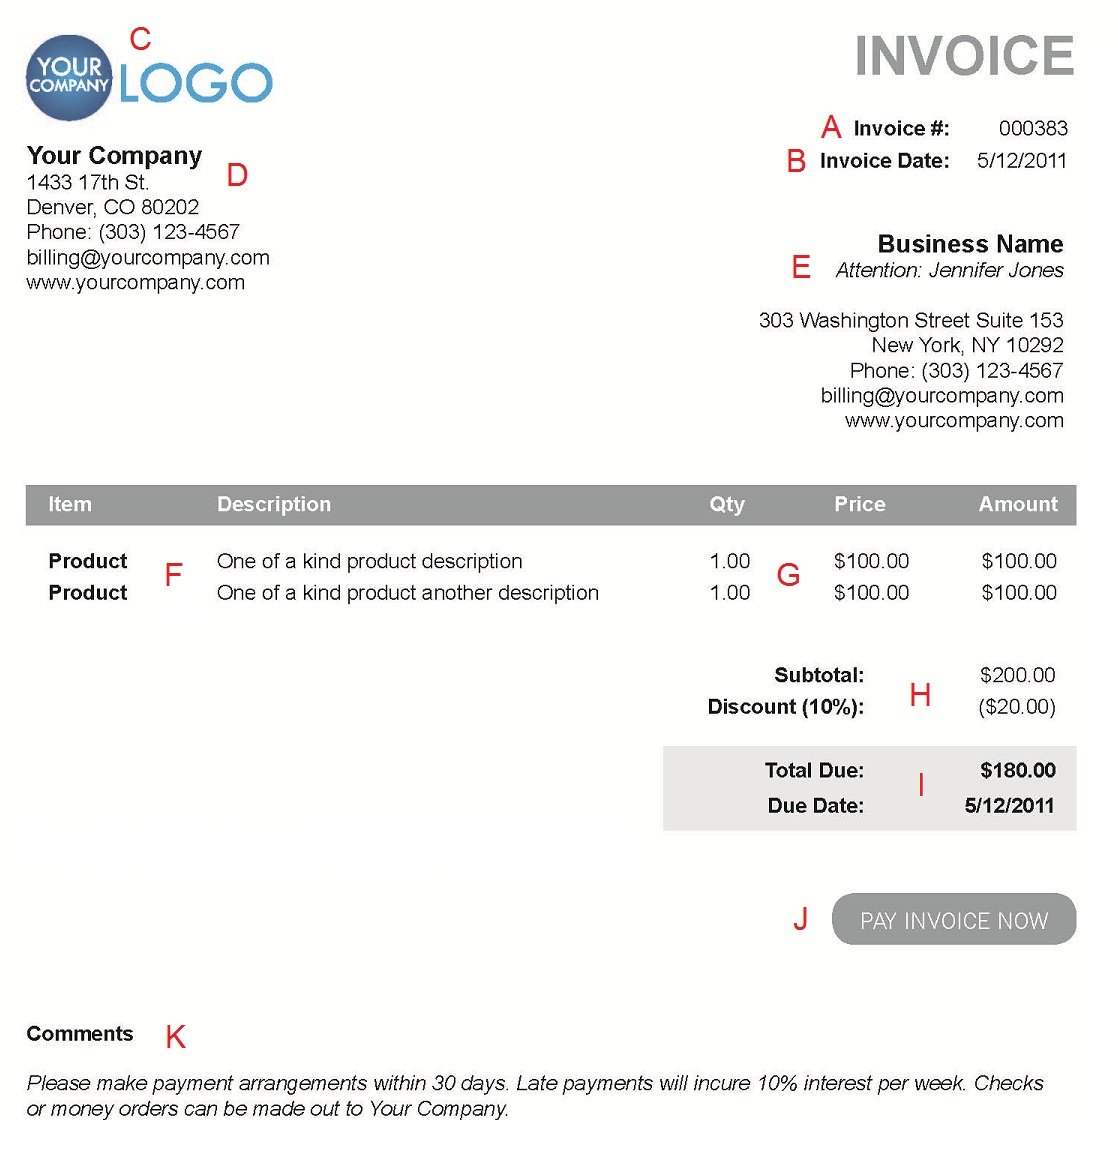 Ultrablogus  Pleasing The  Different Sections Of An Electronic Payment Invoice With Interesting A  With Amusing Hsbc Invoice Finance Also Invoice Amount Means In Addition Late Payment Fees On Invoices And How To Create An Invoice In Microsoft Word As Well As Invoice Hours Additionally Invoice Discounting Vs Factoring From Paysimplecom With Ultrablogus  Interesting The  Different Sections Of An Electronic Payment Invoice With Amusing A  And Pleasing Hsbc Invoice Finance Also Invoice Amount Means In Addition Late Payment Fees On Invoices From Paysimplecom